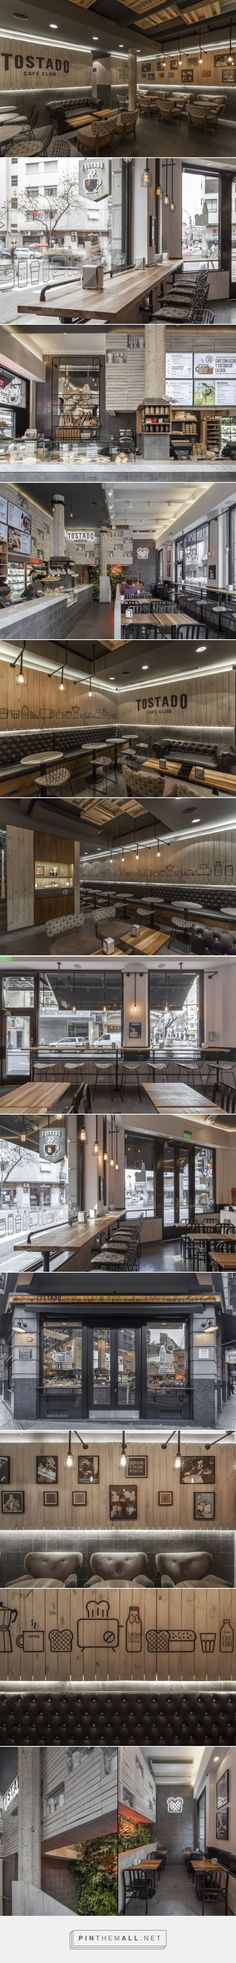 Tostado Cafe Club by Hitzig Militello Arquitectos, Buenos Aires – Argentina » Retail Design Blog... - a grouped images picture - Pin Them All